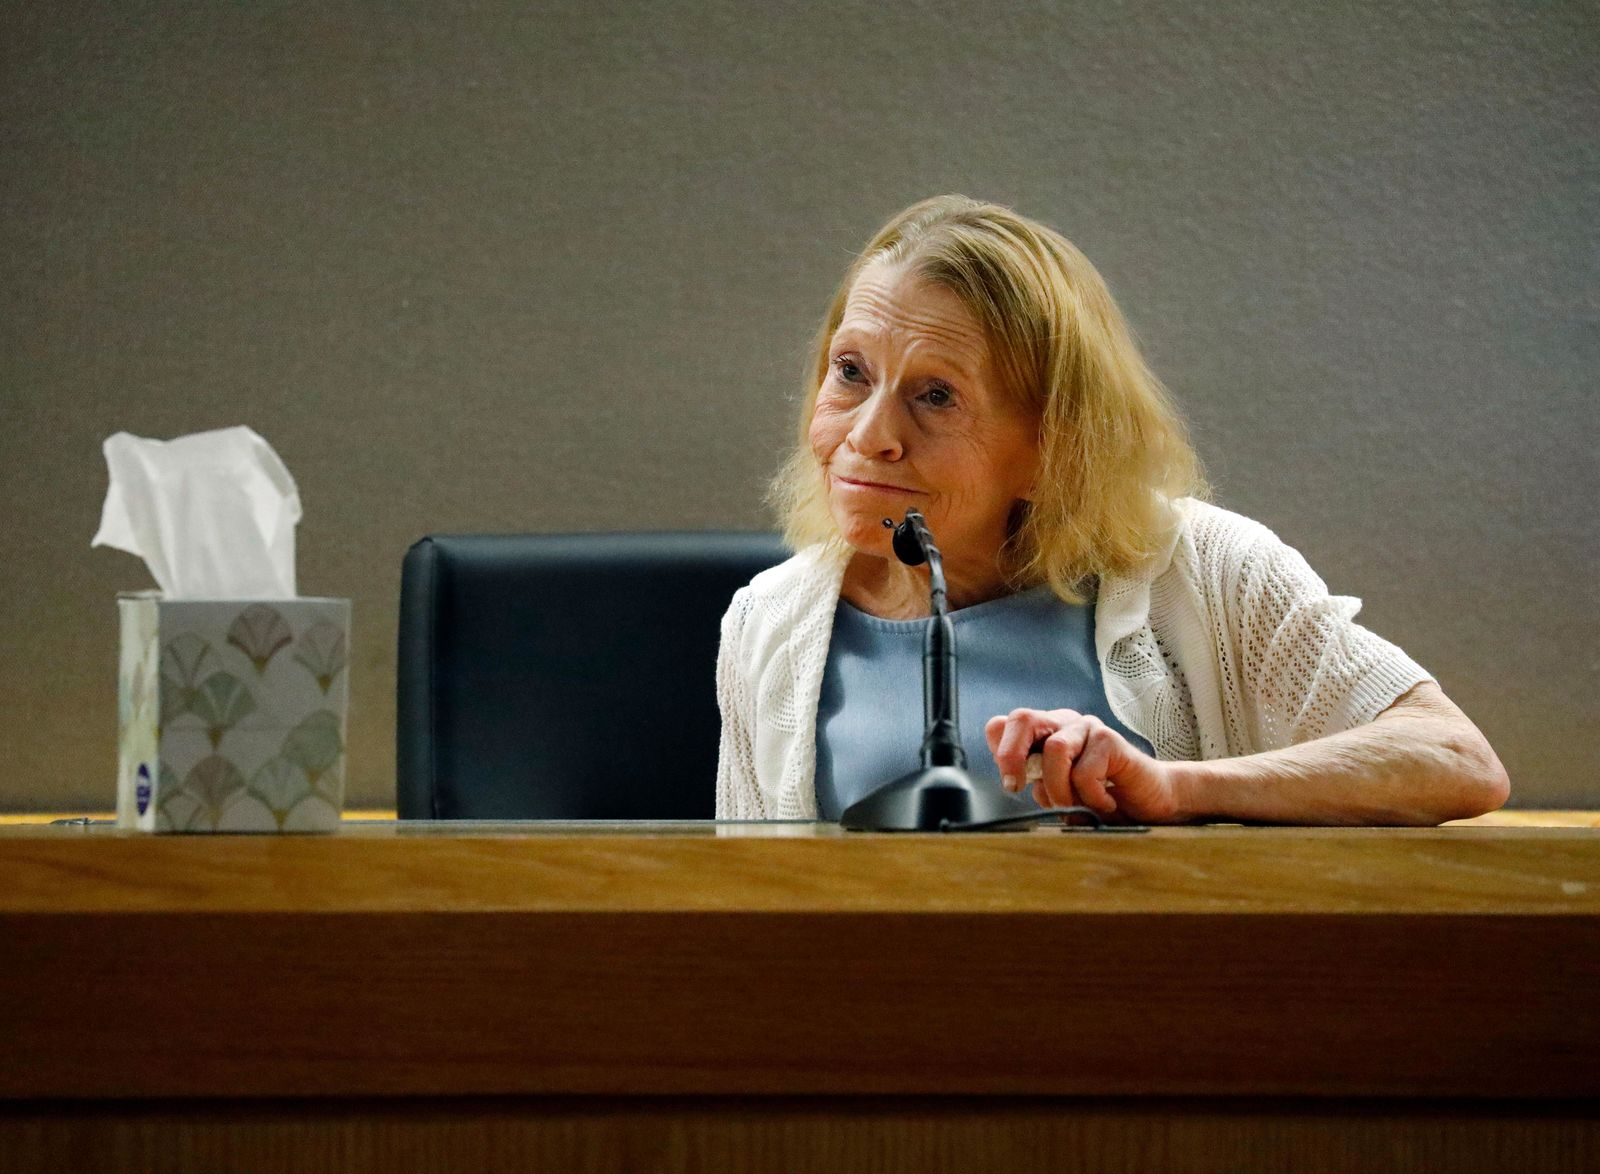 Karen Guyger speaks about her daughter former Dallas police Officer Amber Guyger on the witness stand as she is questioned by defense attorney Shelley Shook during the sentencing phase of Amber Guyger's trial, at the Frank Crowley Courts Building in Dallas, Wednesday, Oct. 2, 2019. Guyger was convicted of murder Tuesday in the killing of Botham Jean and faces a sentence that could range from five years to life in prison or be lowered to as little as two years if the jury decides the shooting was a crime of sudden passion. (Tom Fox/The Dallas Morning News via AP, Pool)